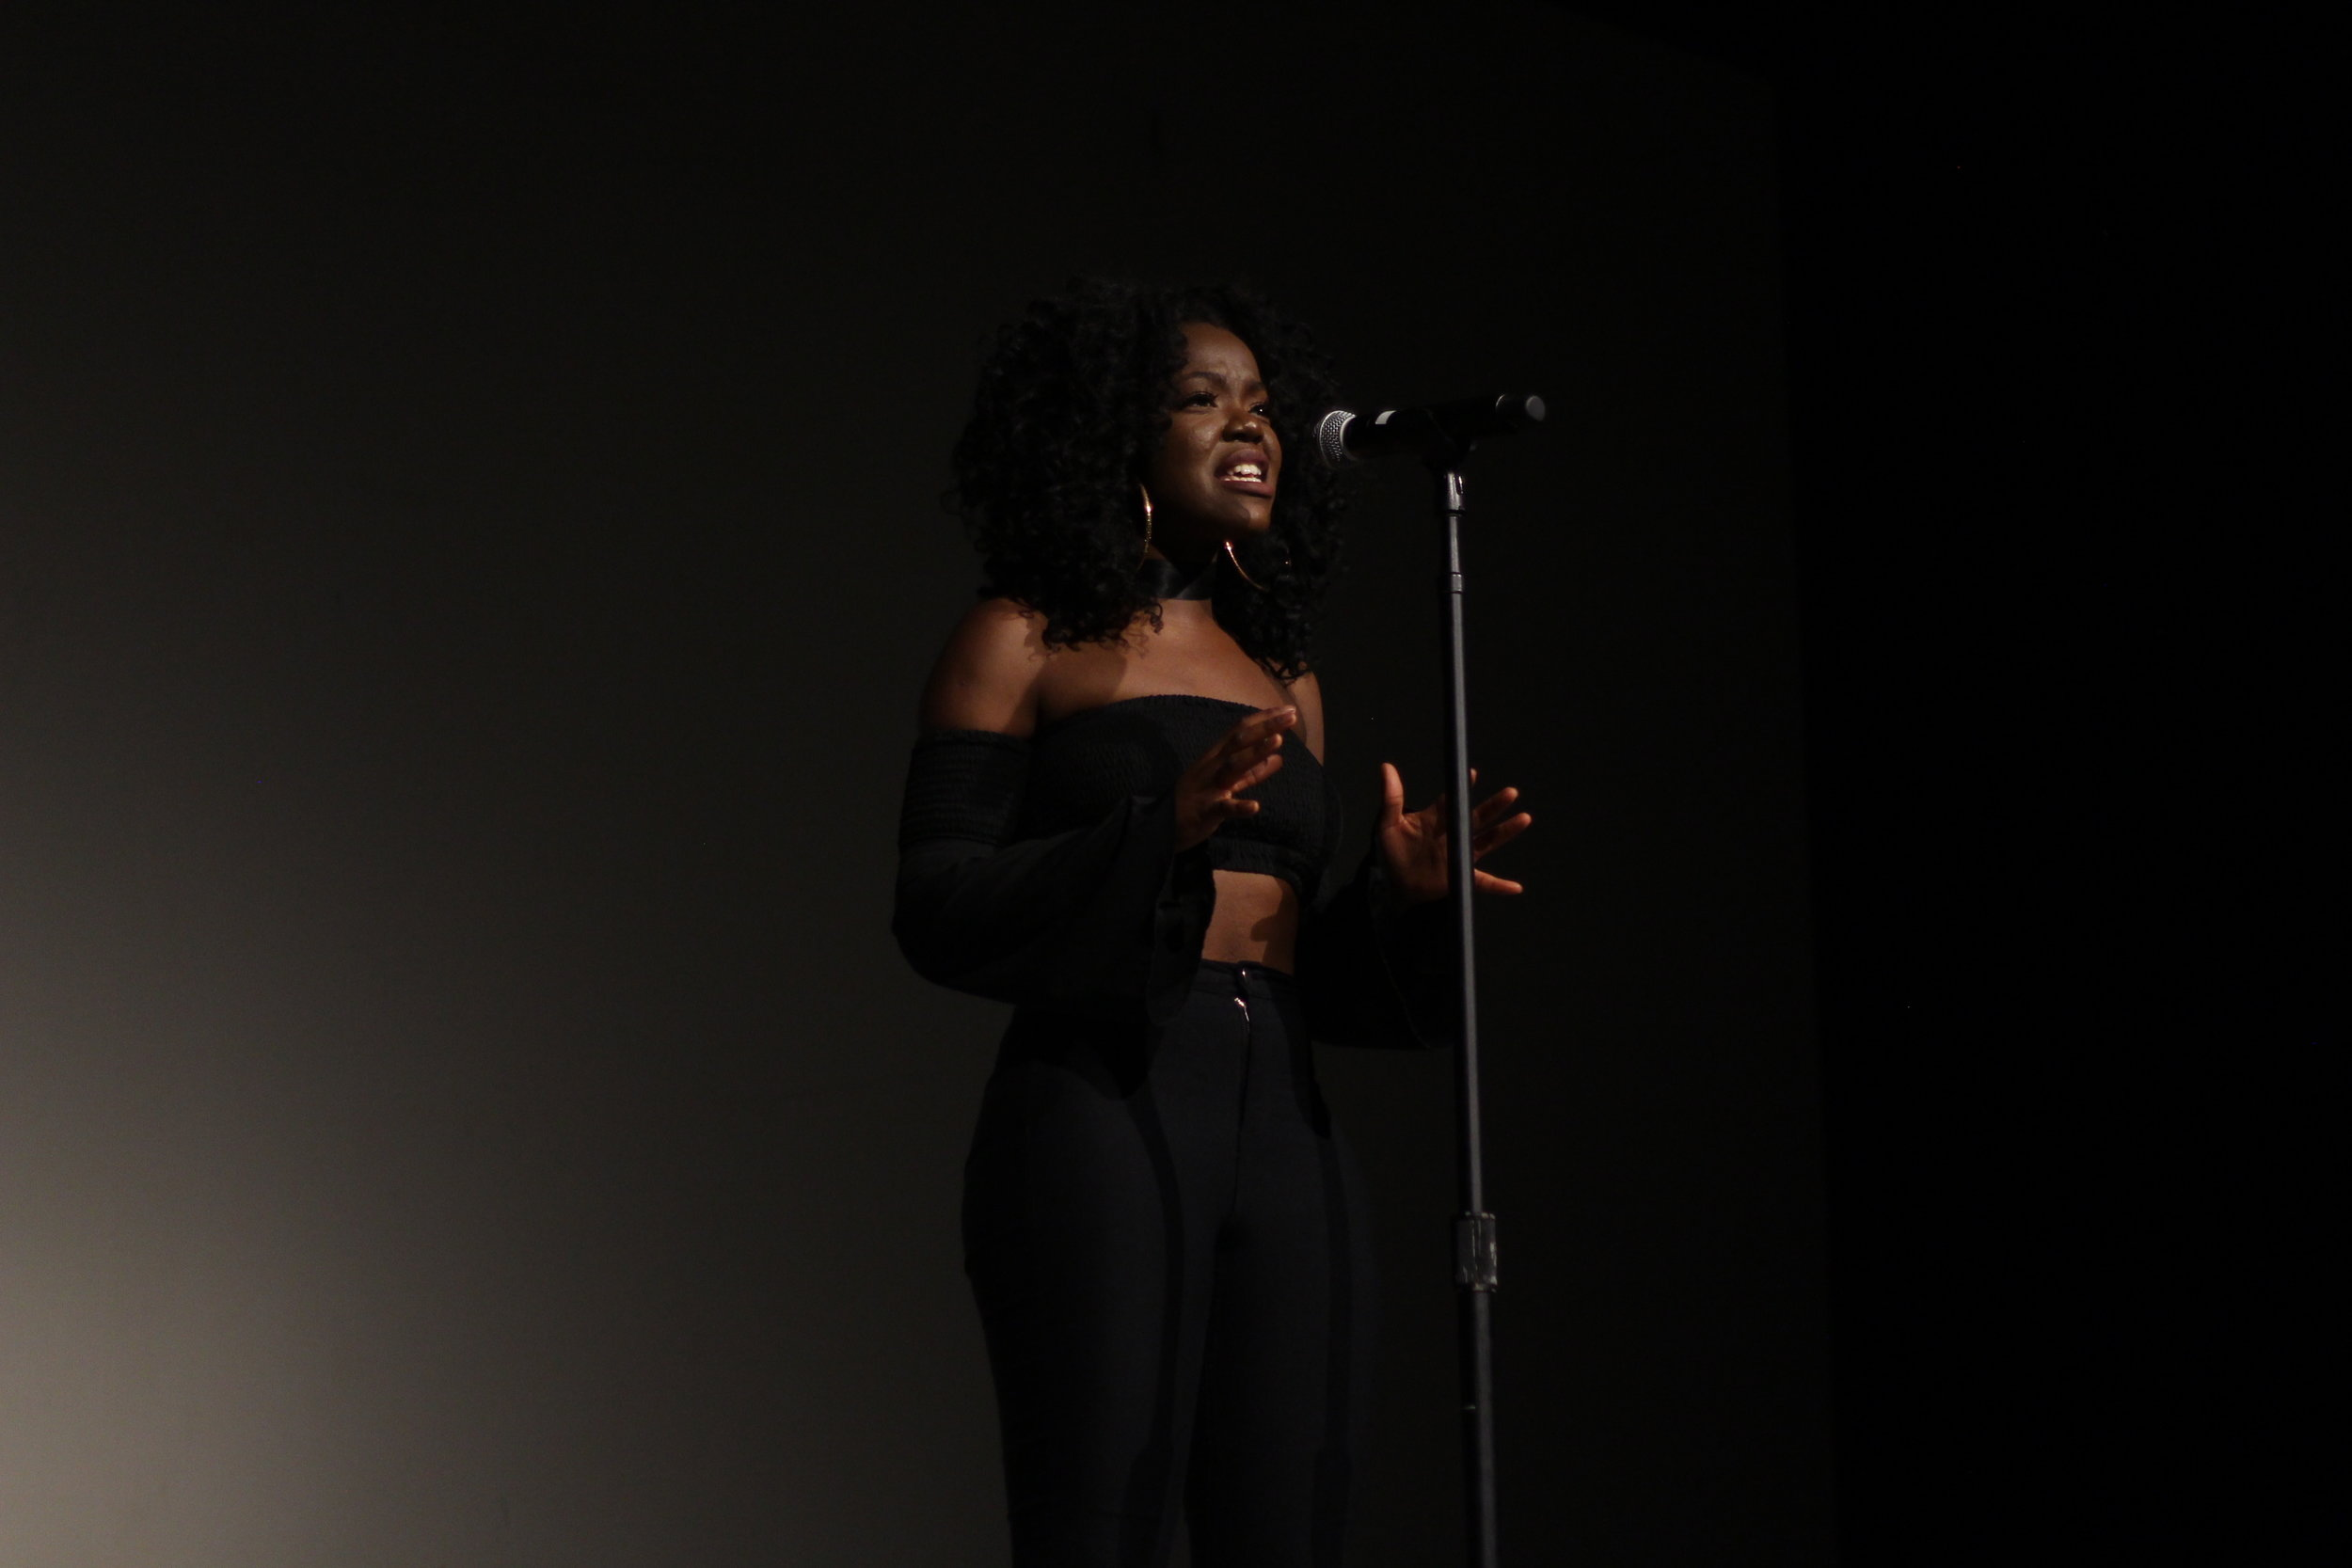 Siji Deleawe speaks about her experience being a black woman on campus.